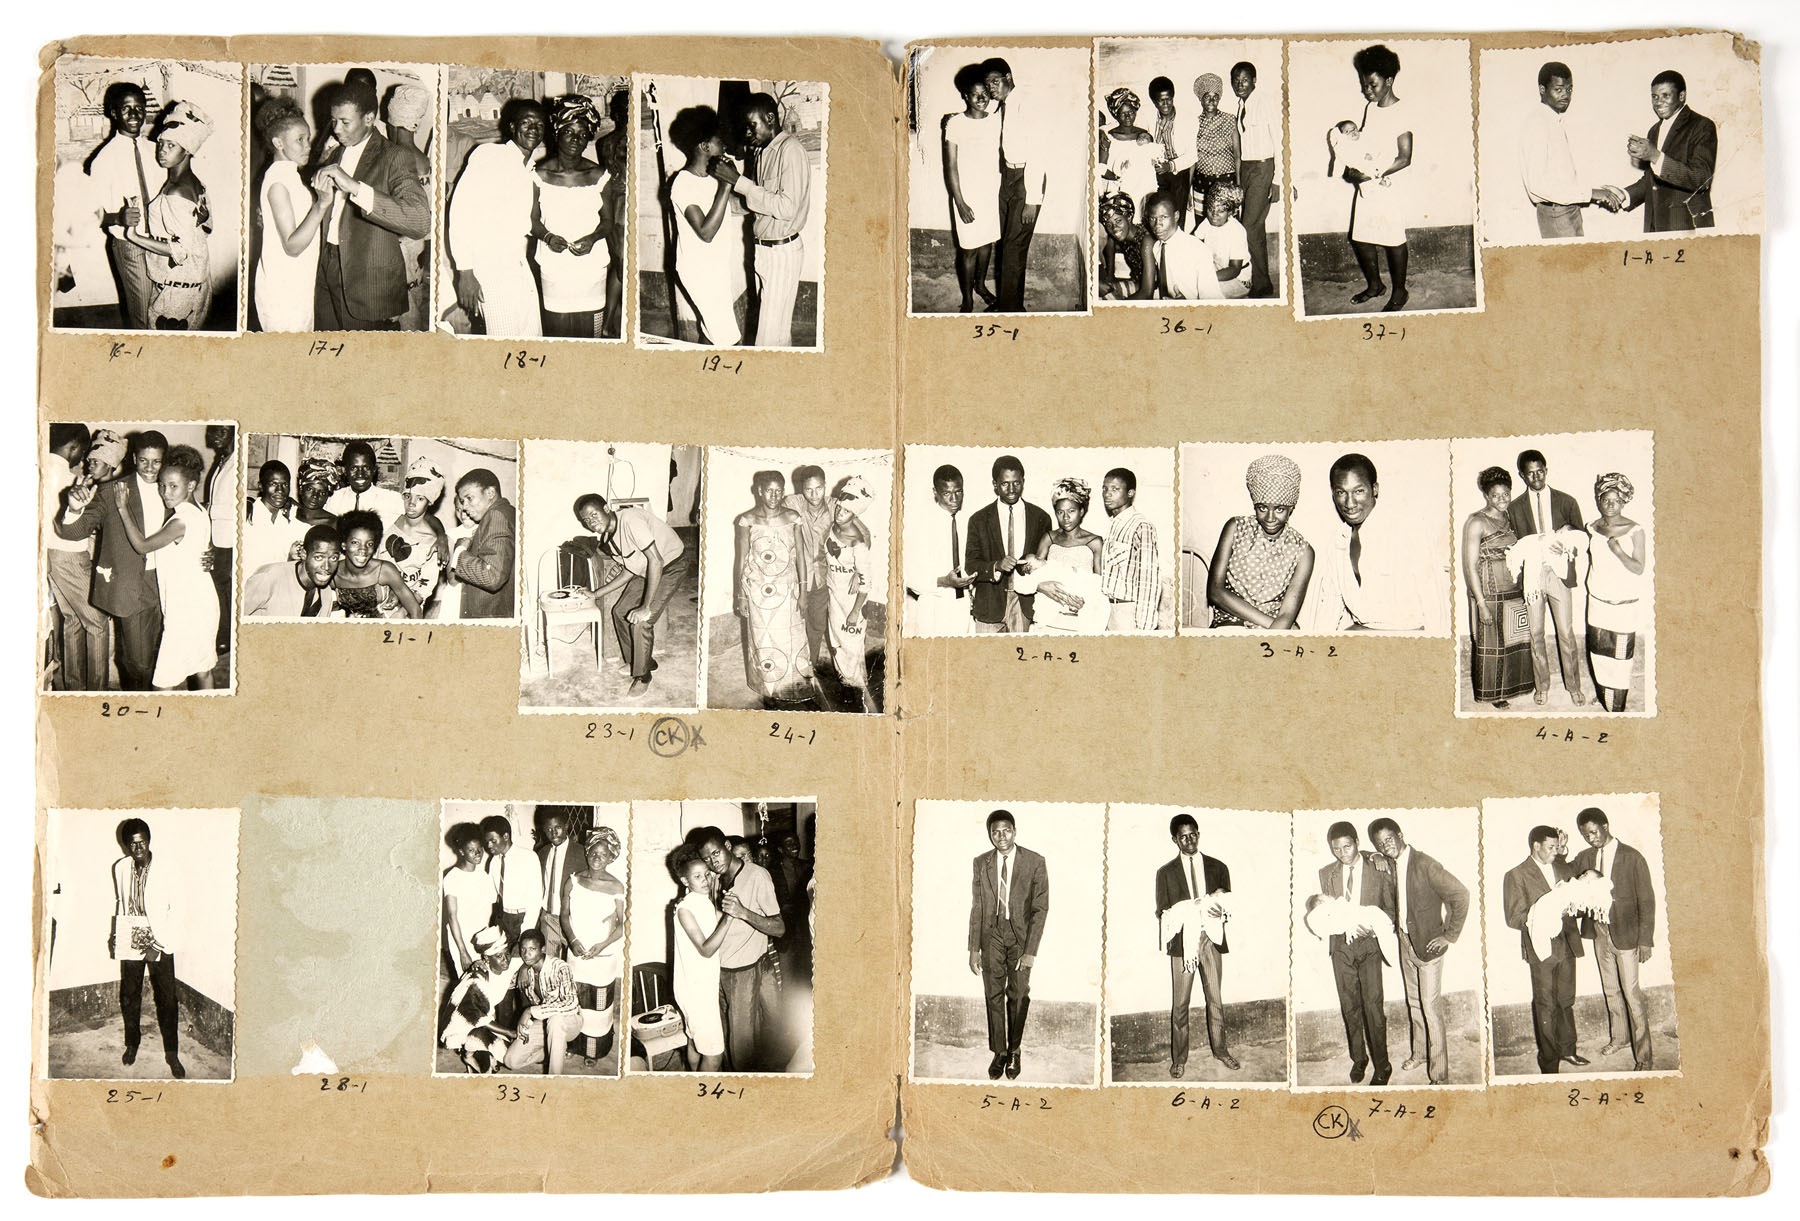 Malick Sidibé, Baptism, 1967. Gelatin silver prints mounted to paper. © Malick Sidibé / Gwinzegal / diChroma photography